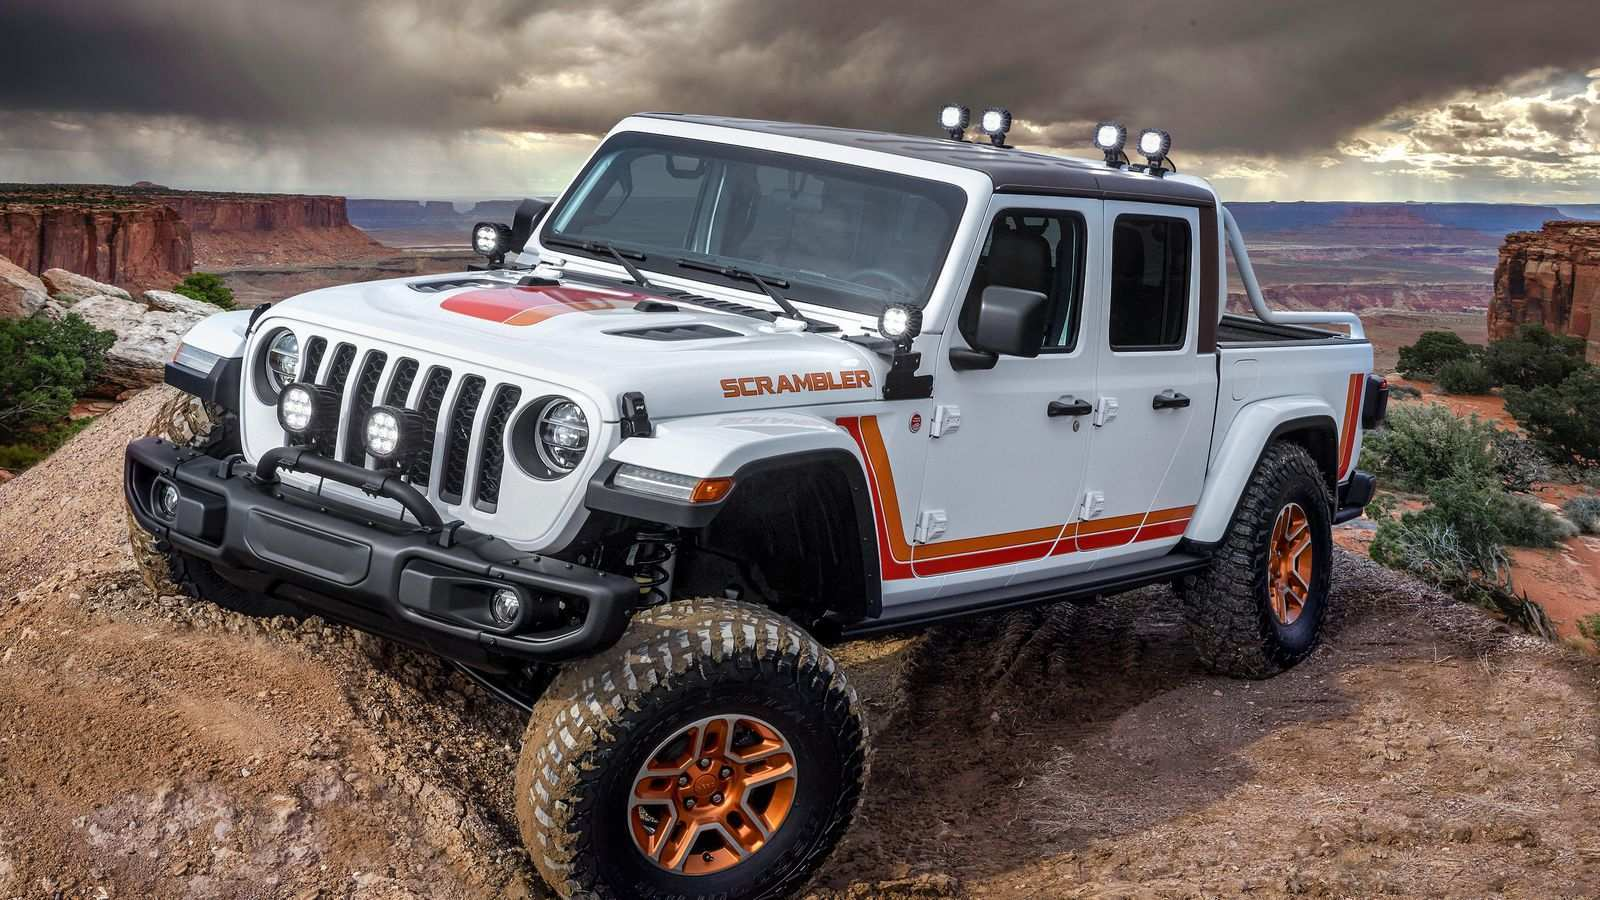 44 New Jeep Safari 2020 Wallpaper